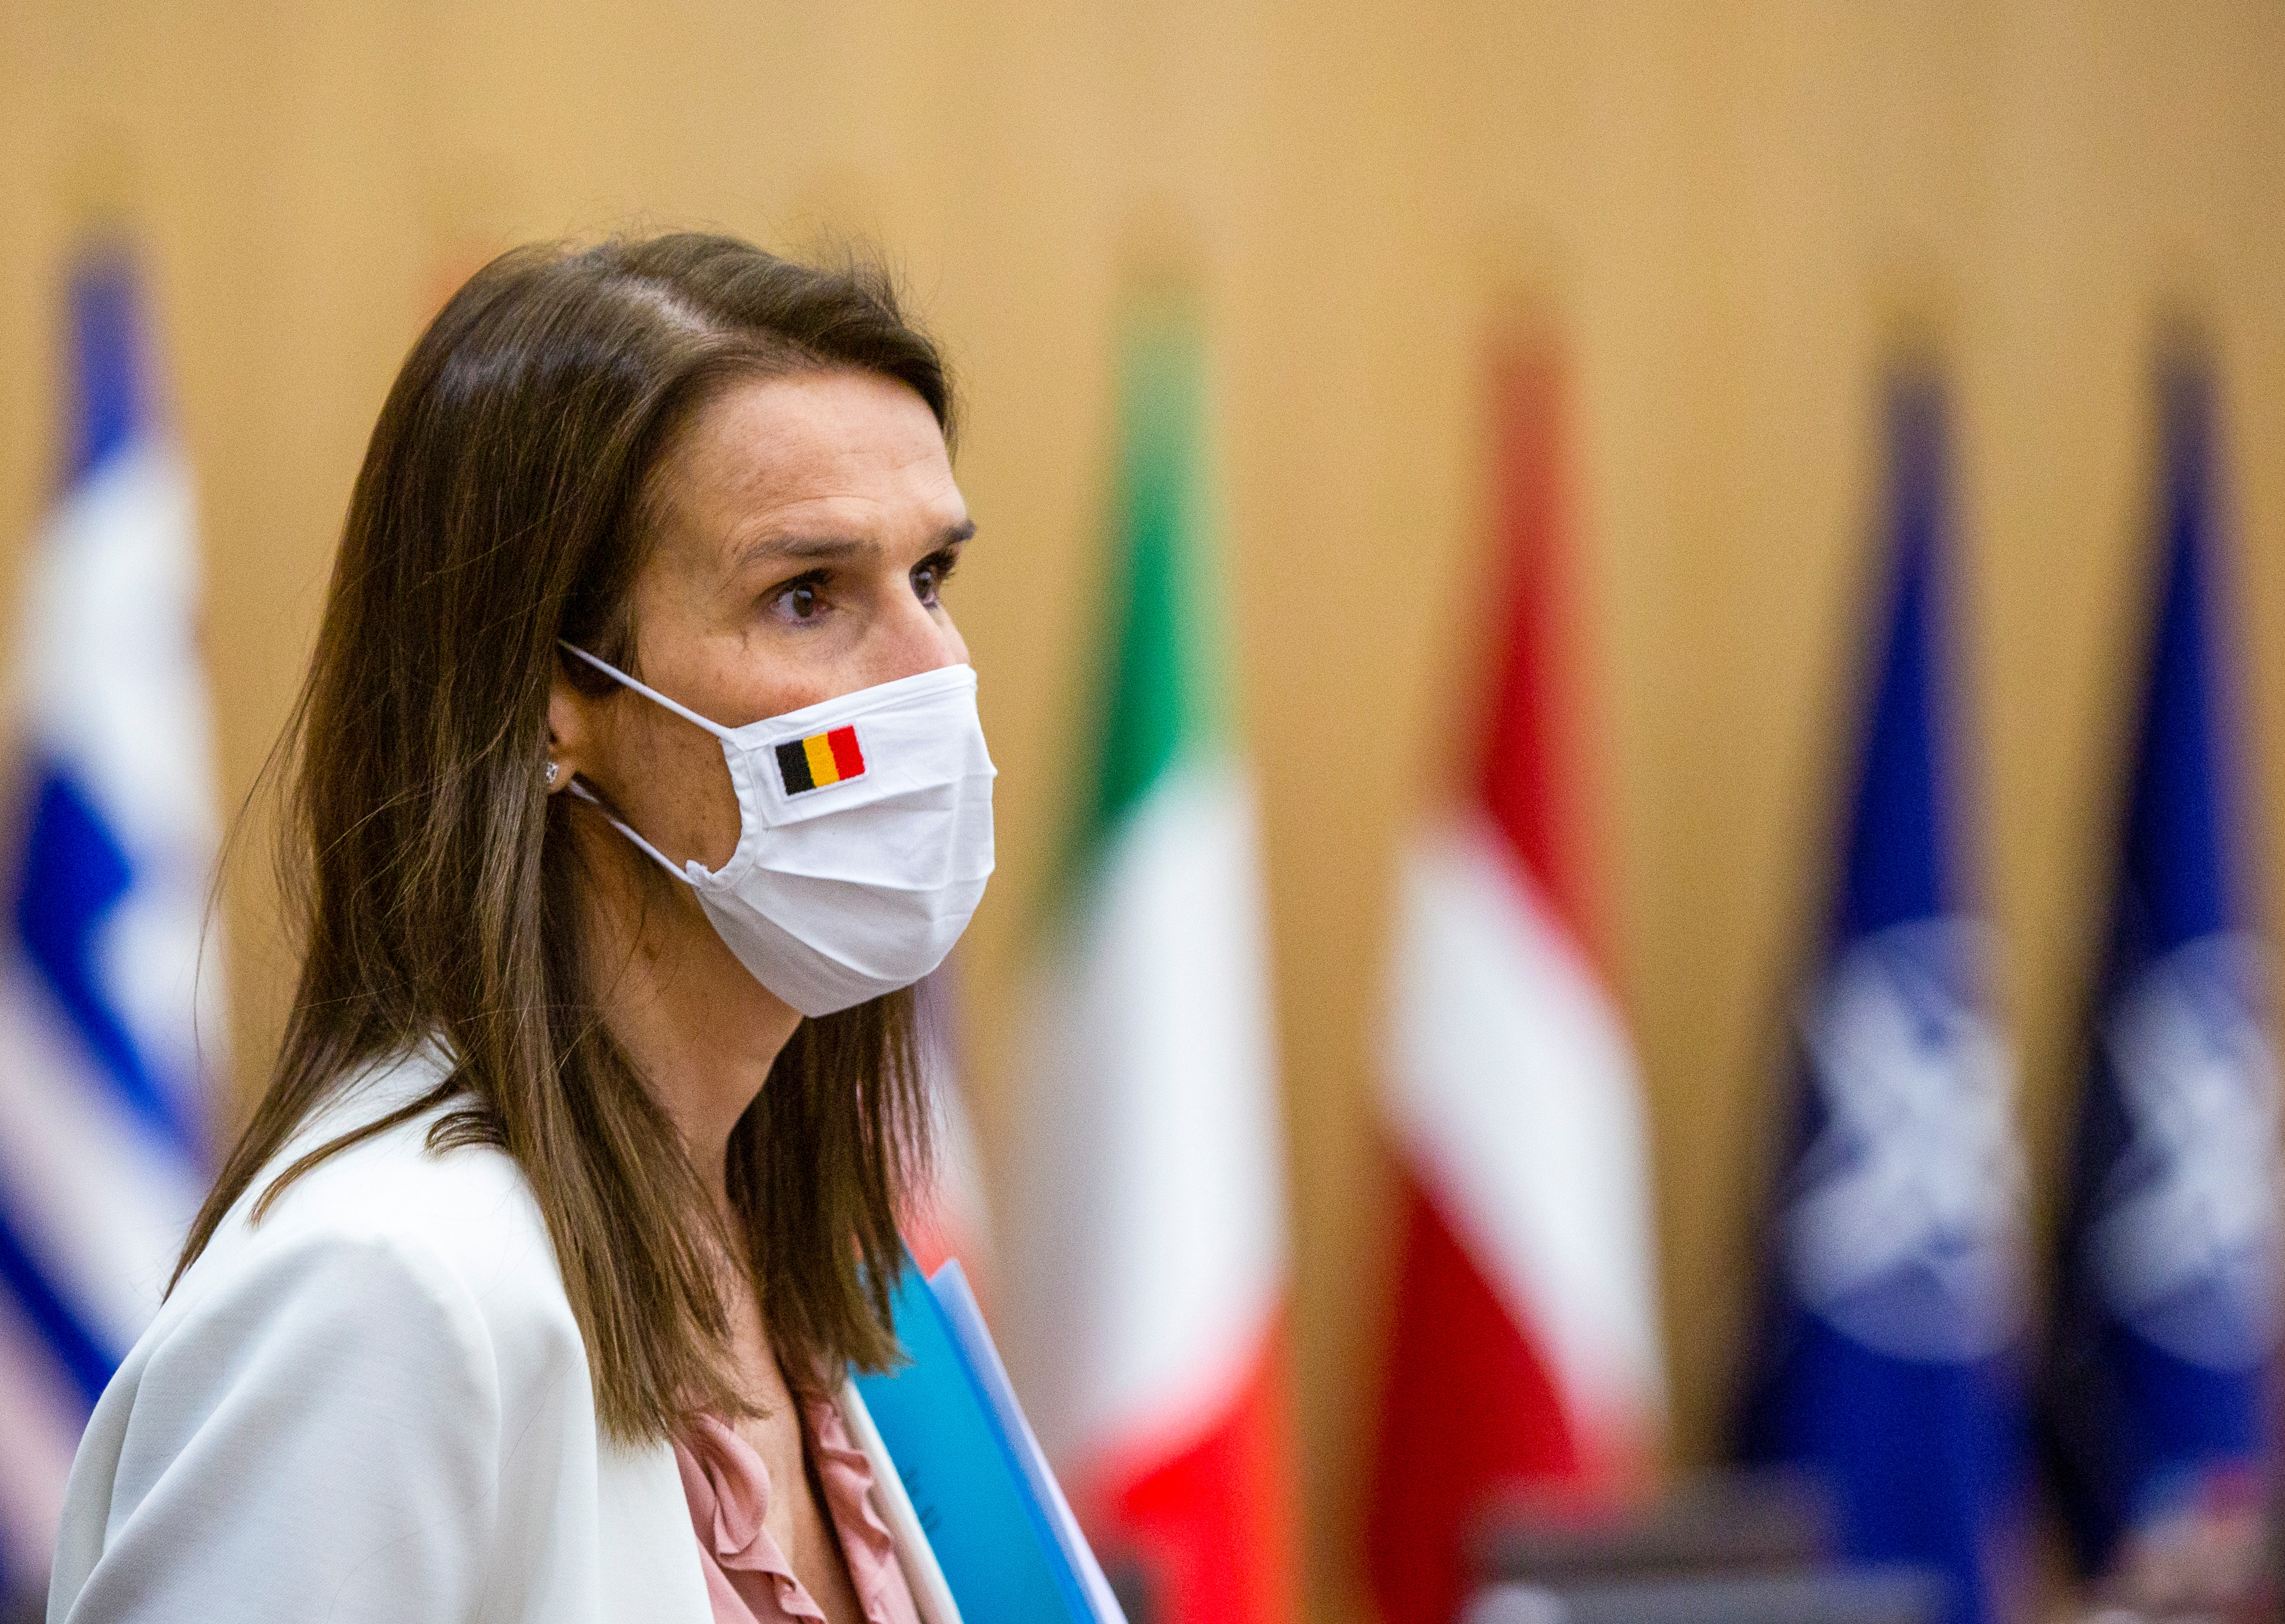 Belgium's Foreign Minister Sophie Wilmes attends a meeting of NATO foreign ministers at the NATO headquarters in Brussels, Belgium, March 23, 2021. Virginia Mayo/Pool via REUTERS